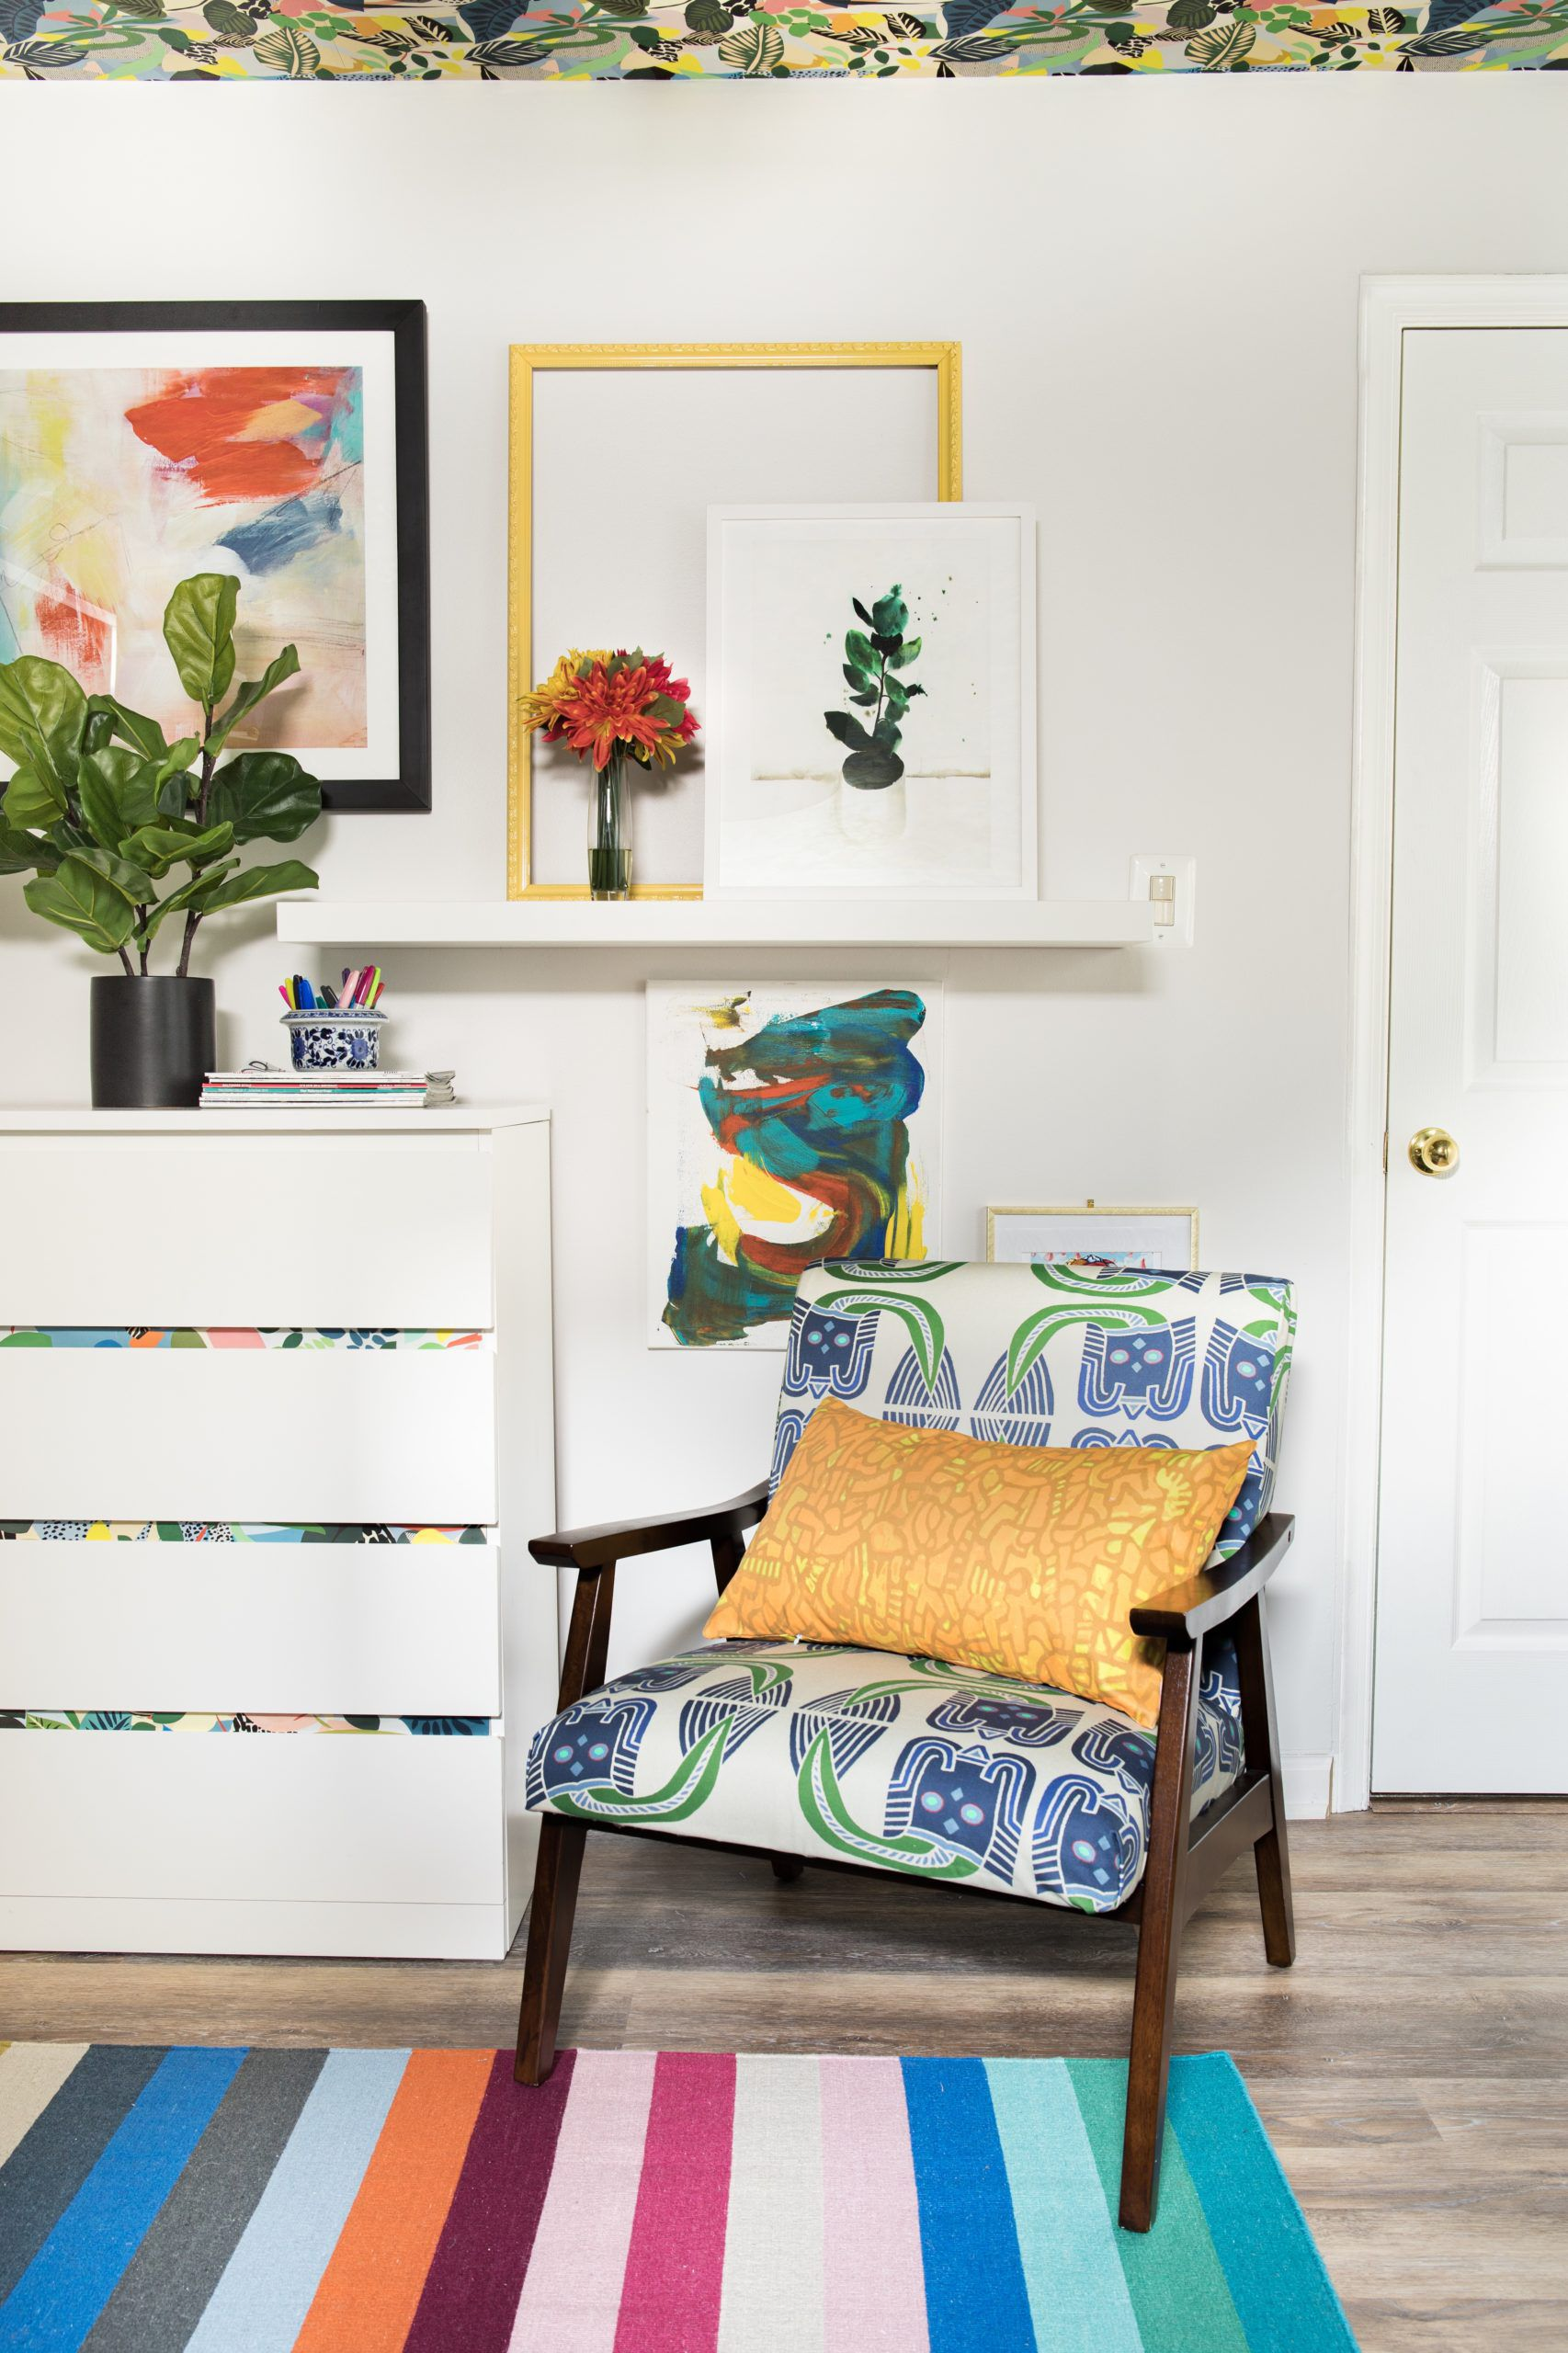 Stephanie Watkins Wallpaper On The Cabinet • Hockney Wallpaper by Kitty McCall • Colorful Wallpaper